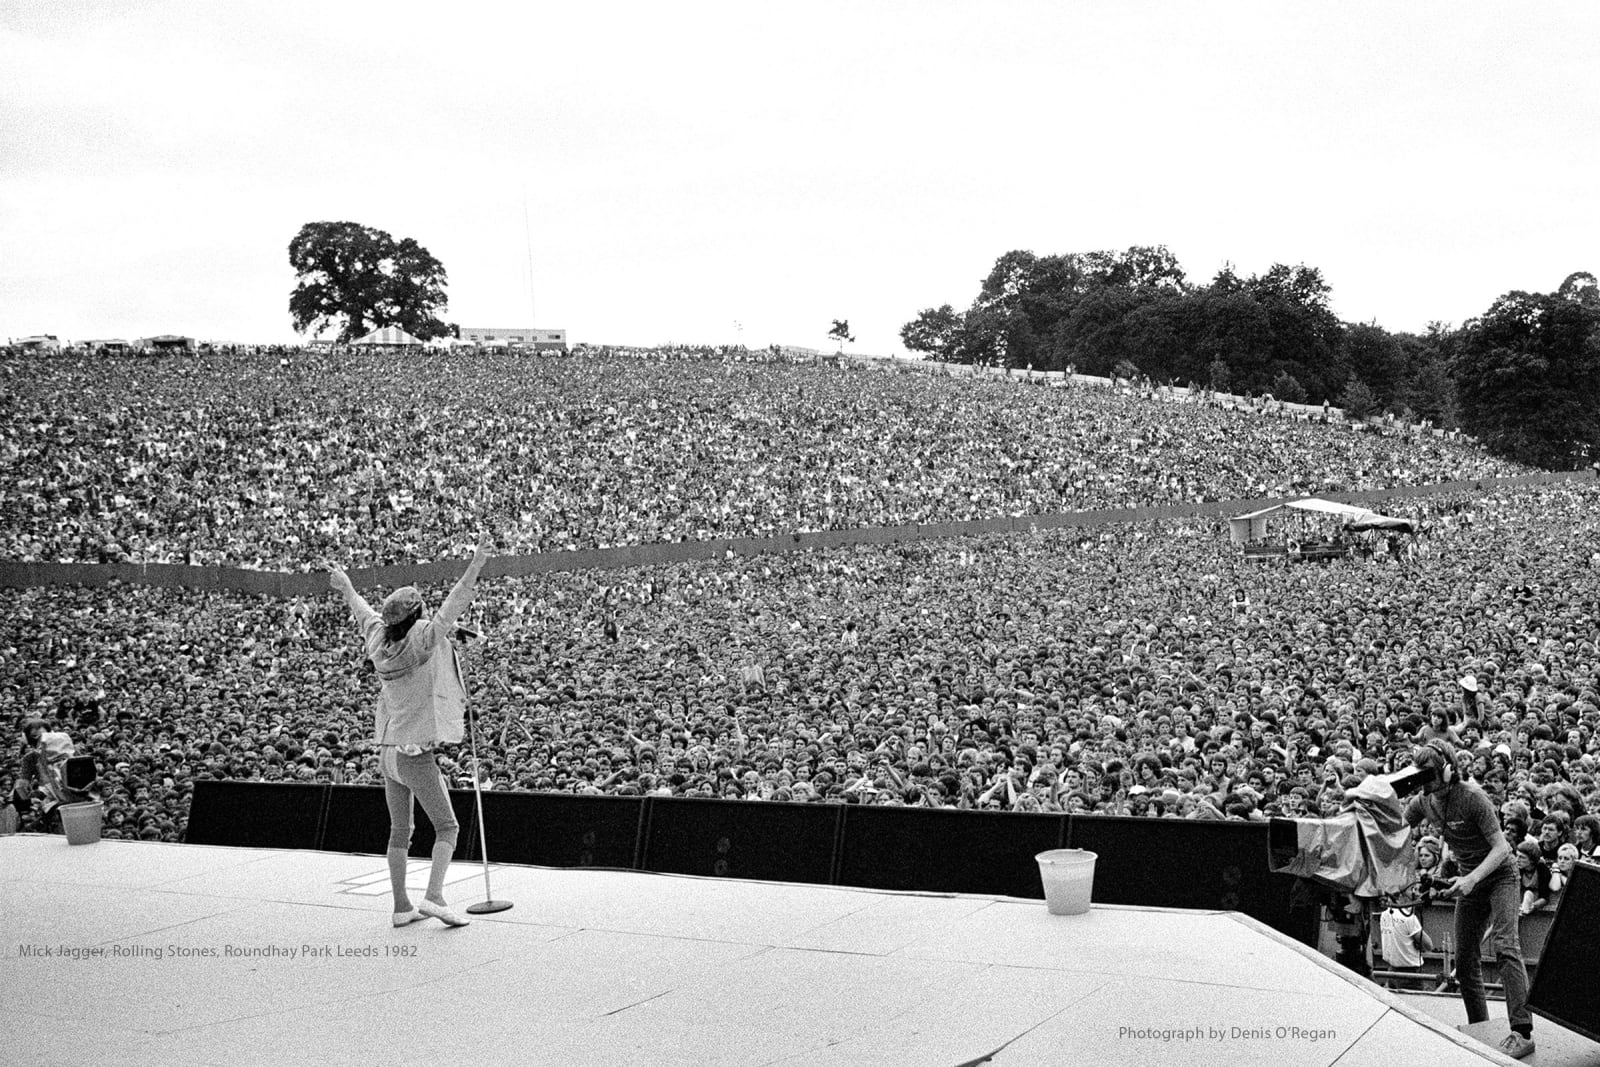 ROLLING STONES, Mick Jagger Roundhay Park, 1982